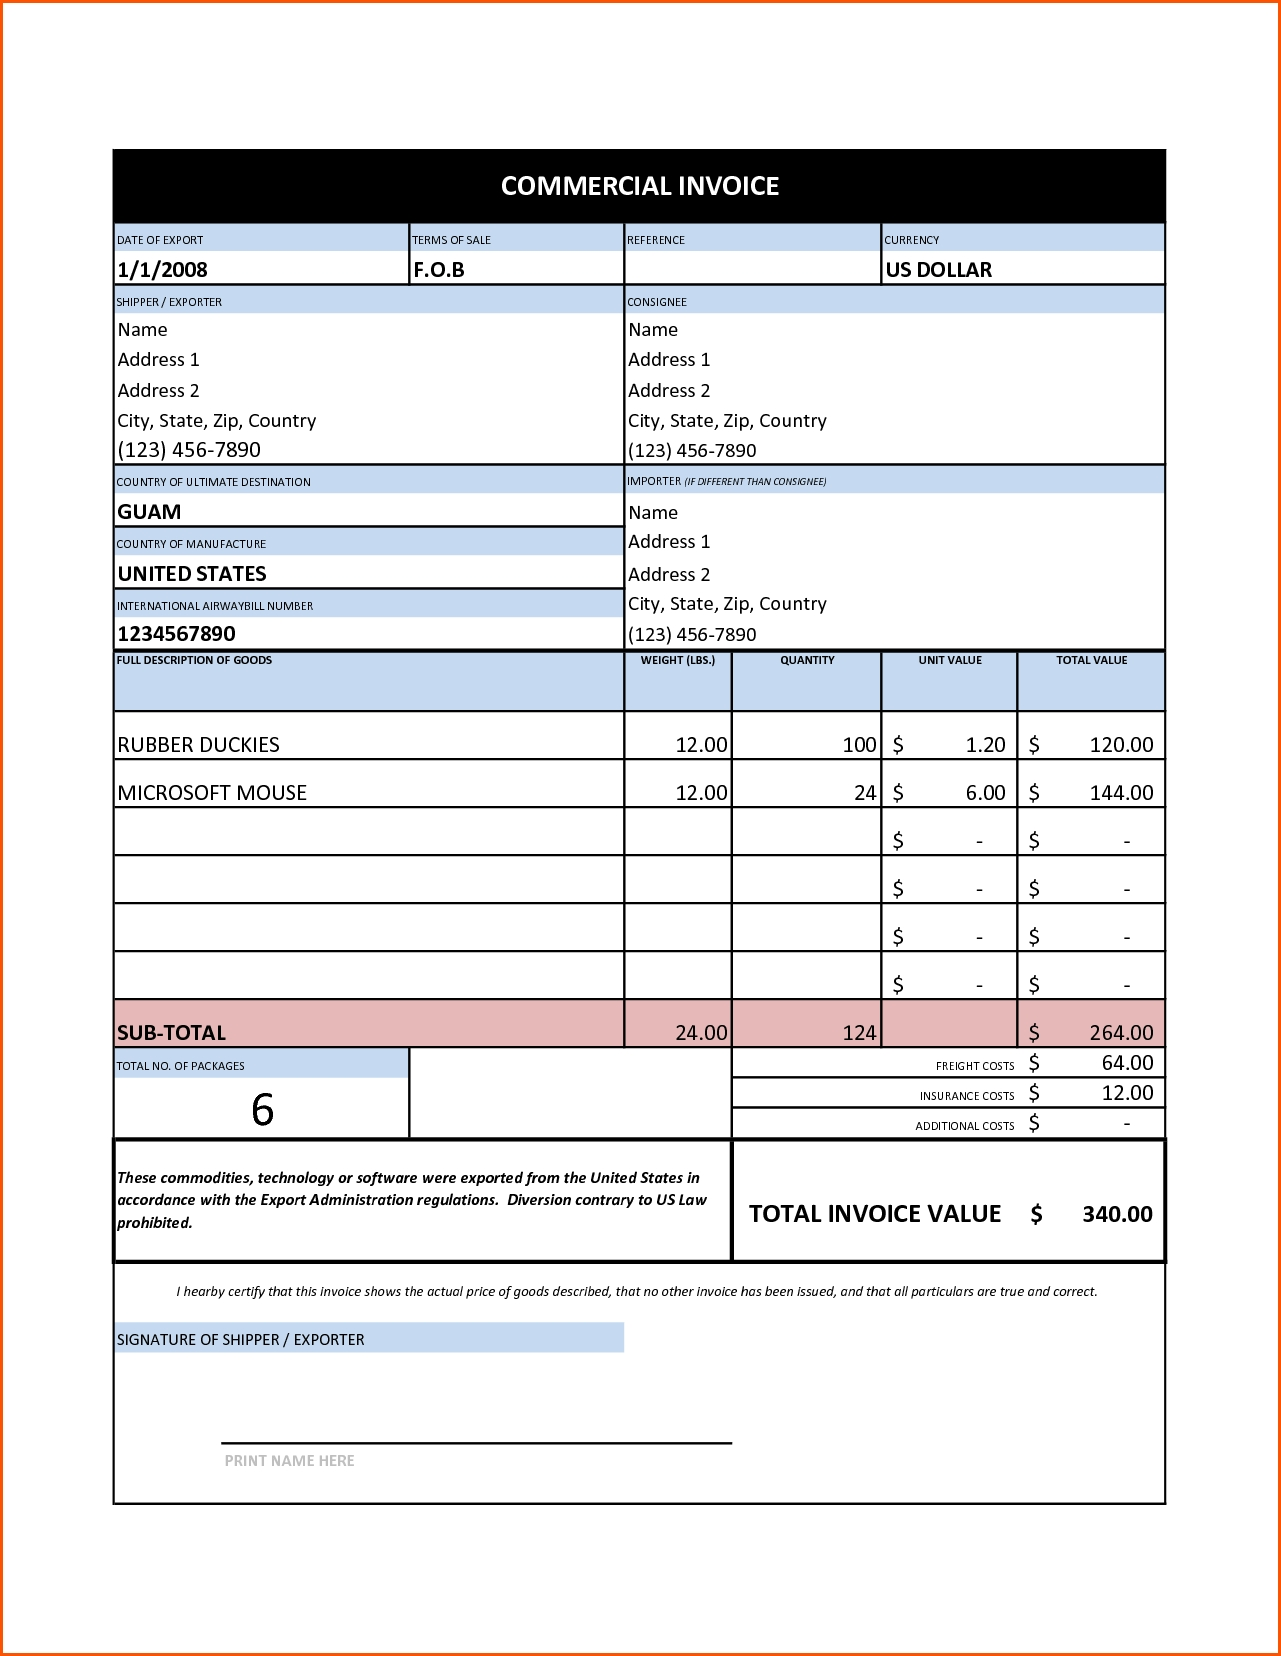 commercial invoice sample excel 11 commercial invoice template denial letter sample 1281 X 1656